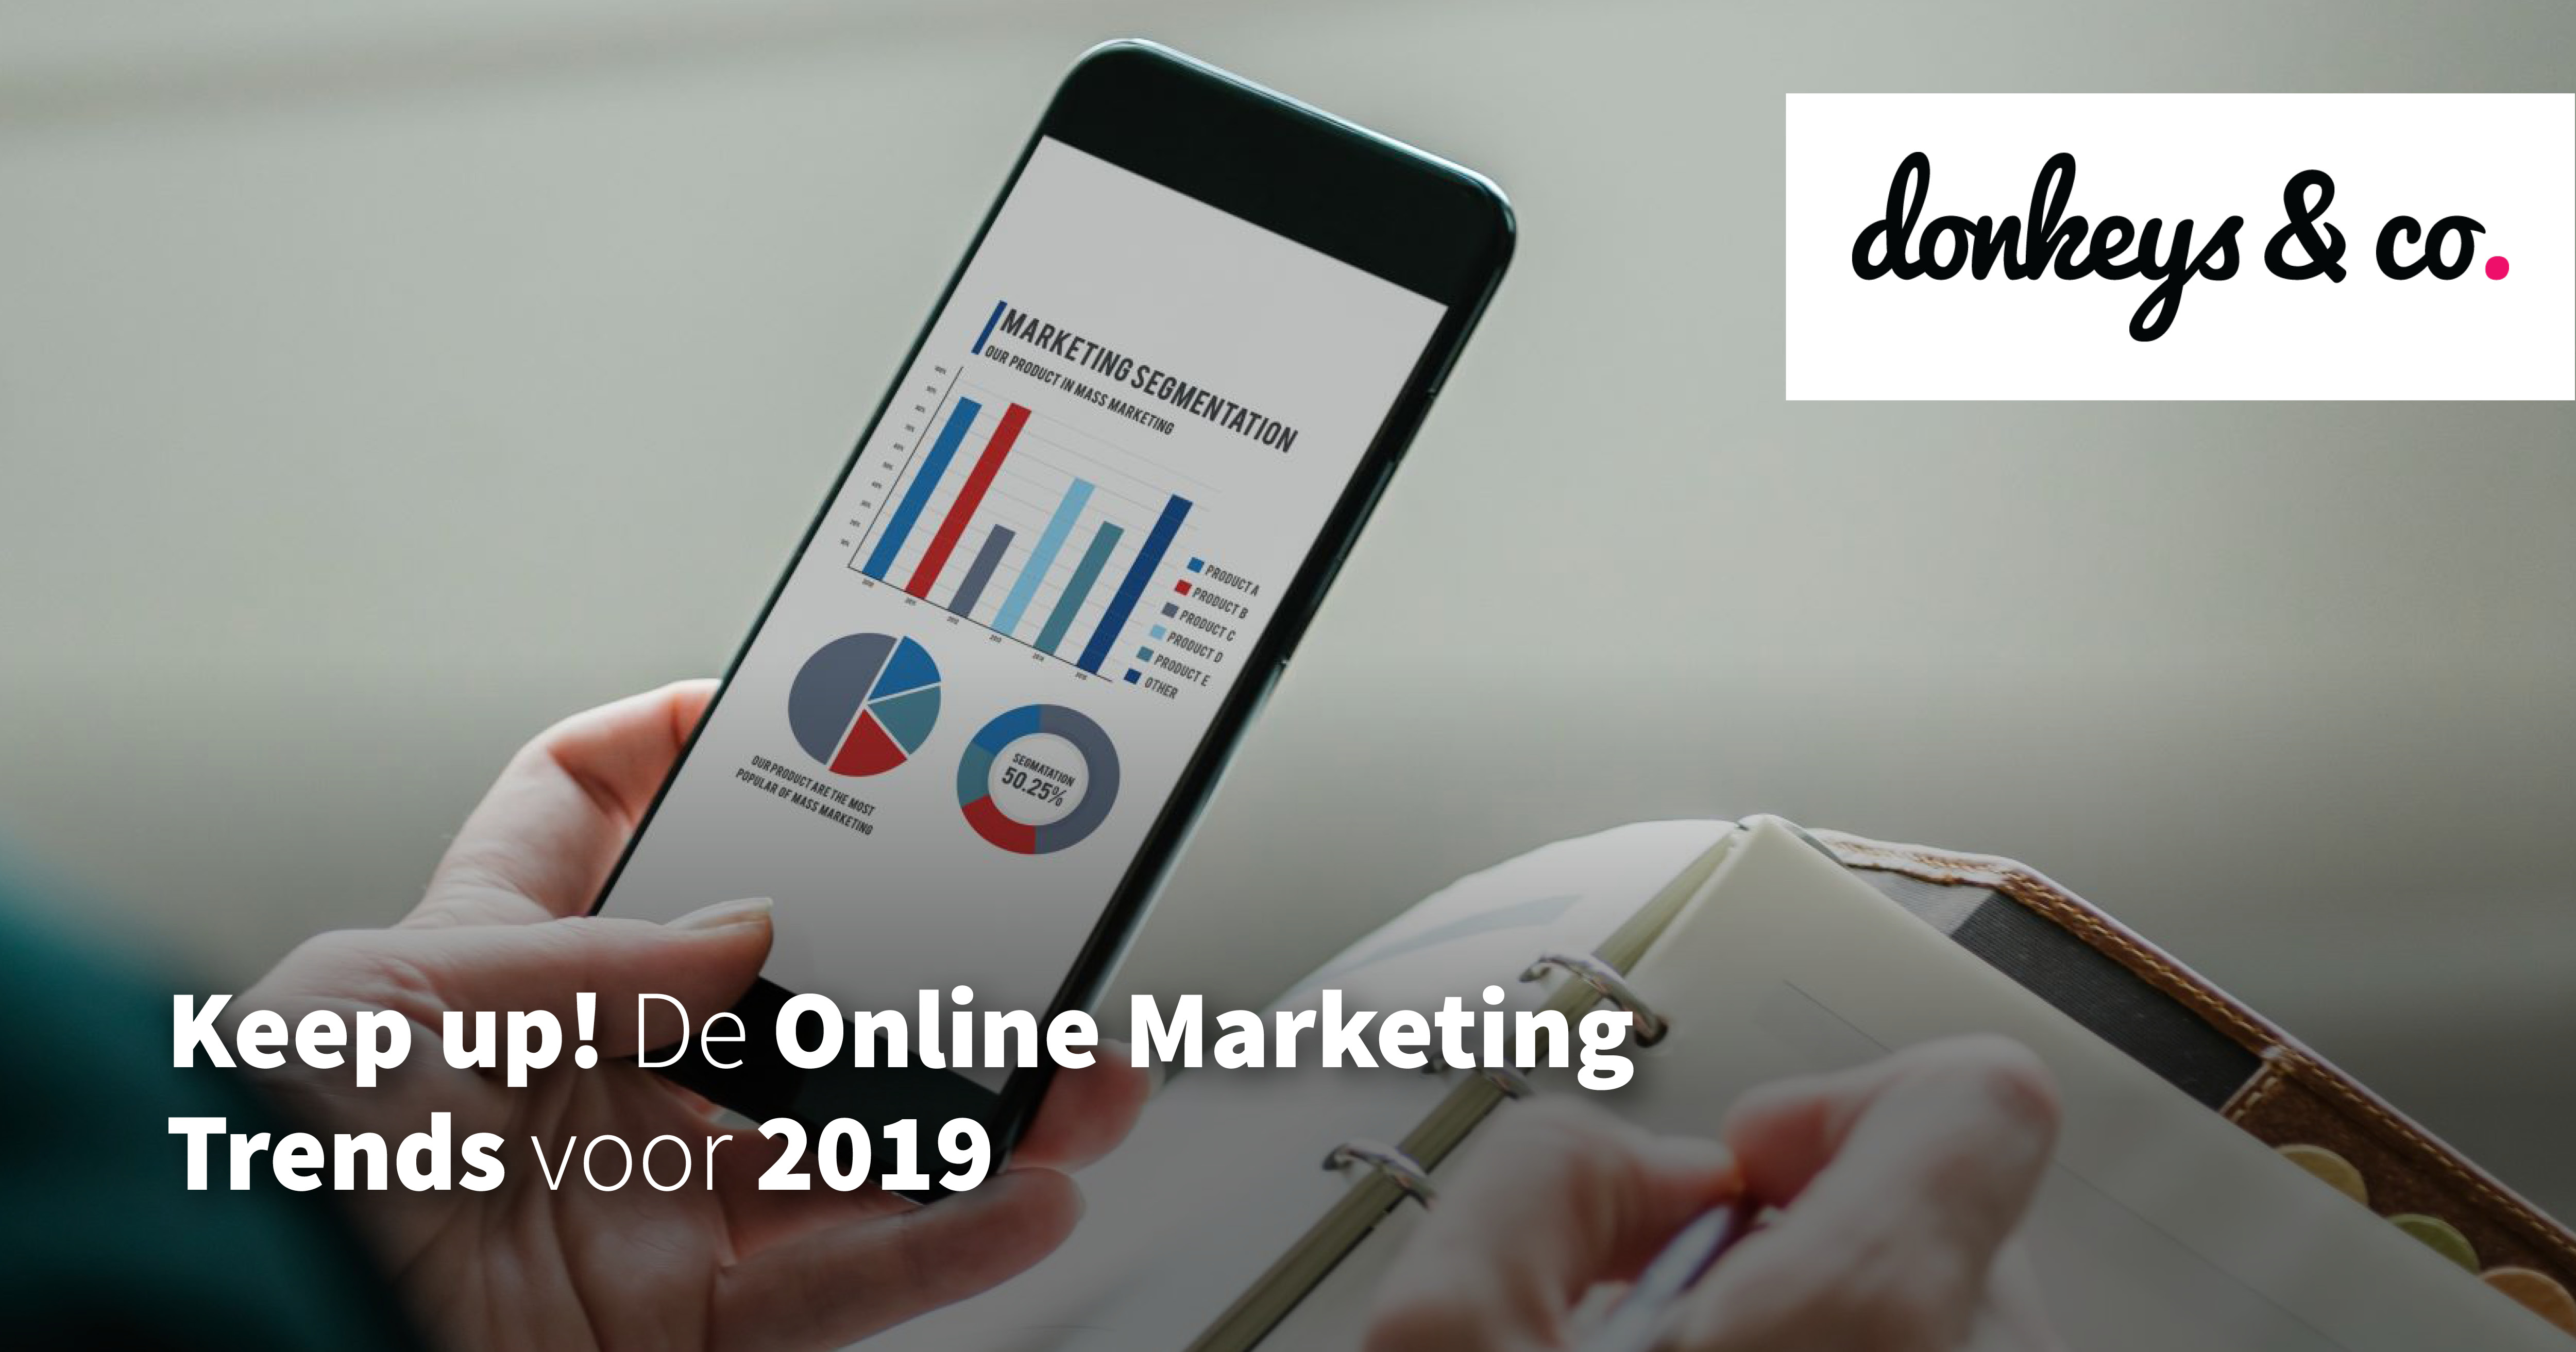 De Online marketing Trends voor 2019